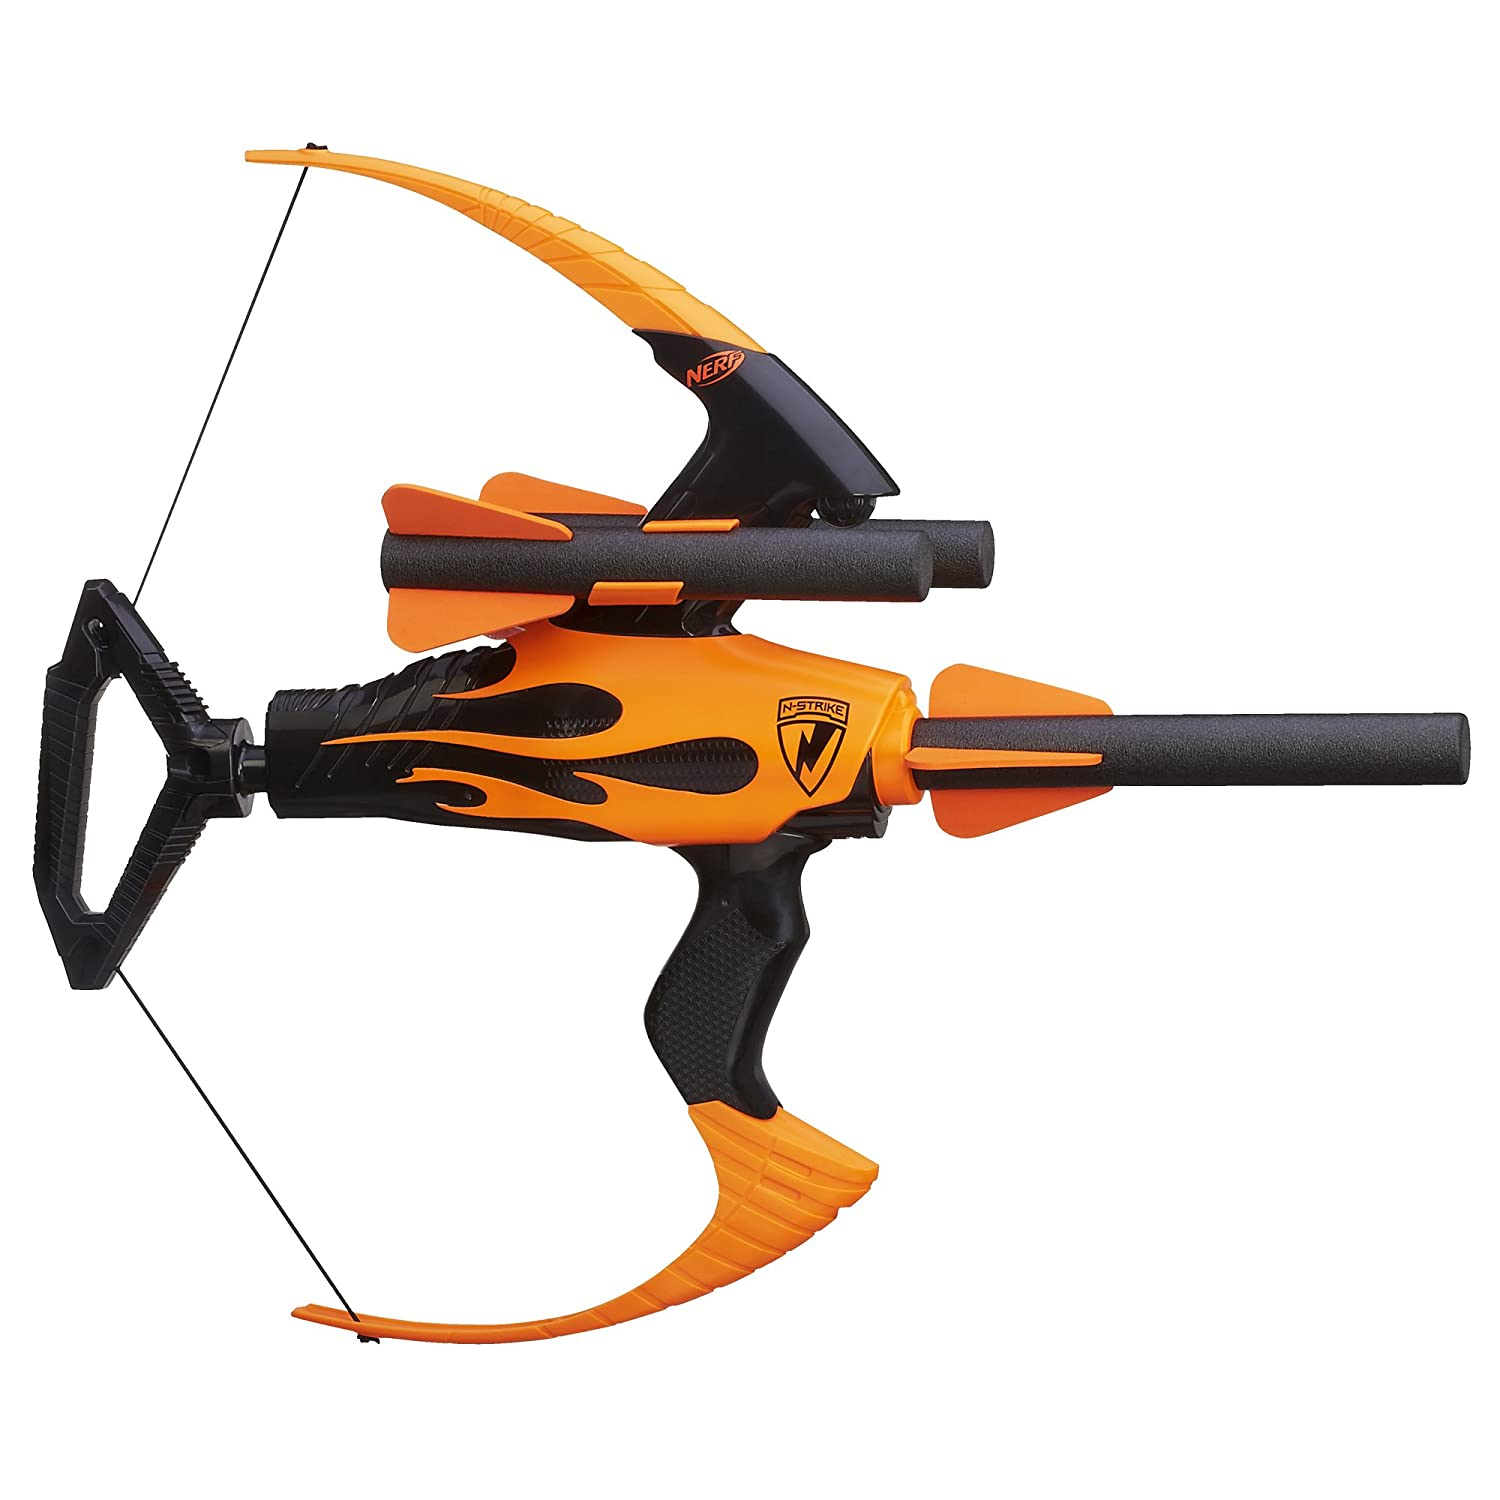 Nerf Toys For Boys : Best gifts for year old boys in itsy bitsy fun